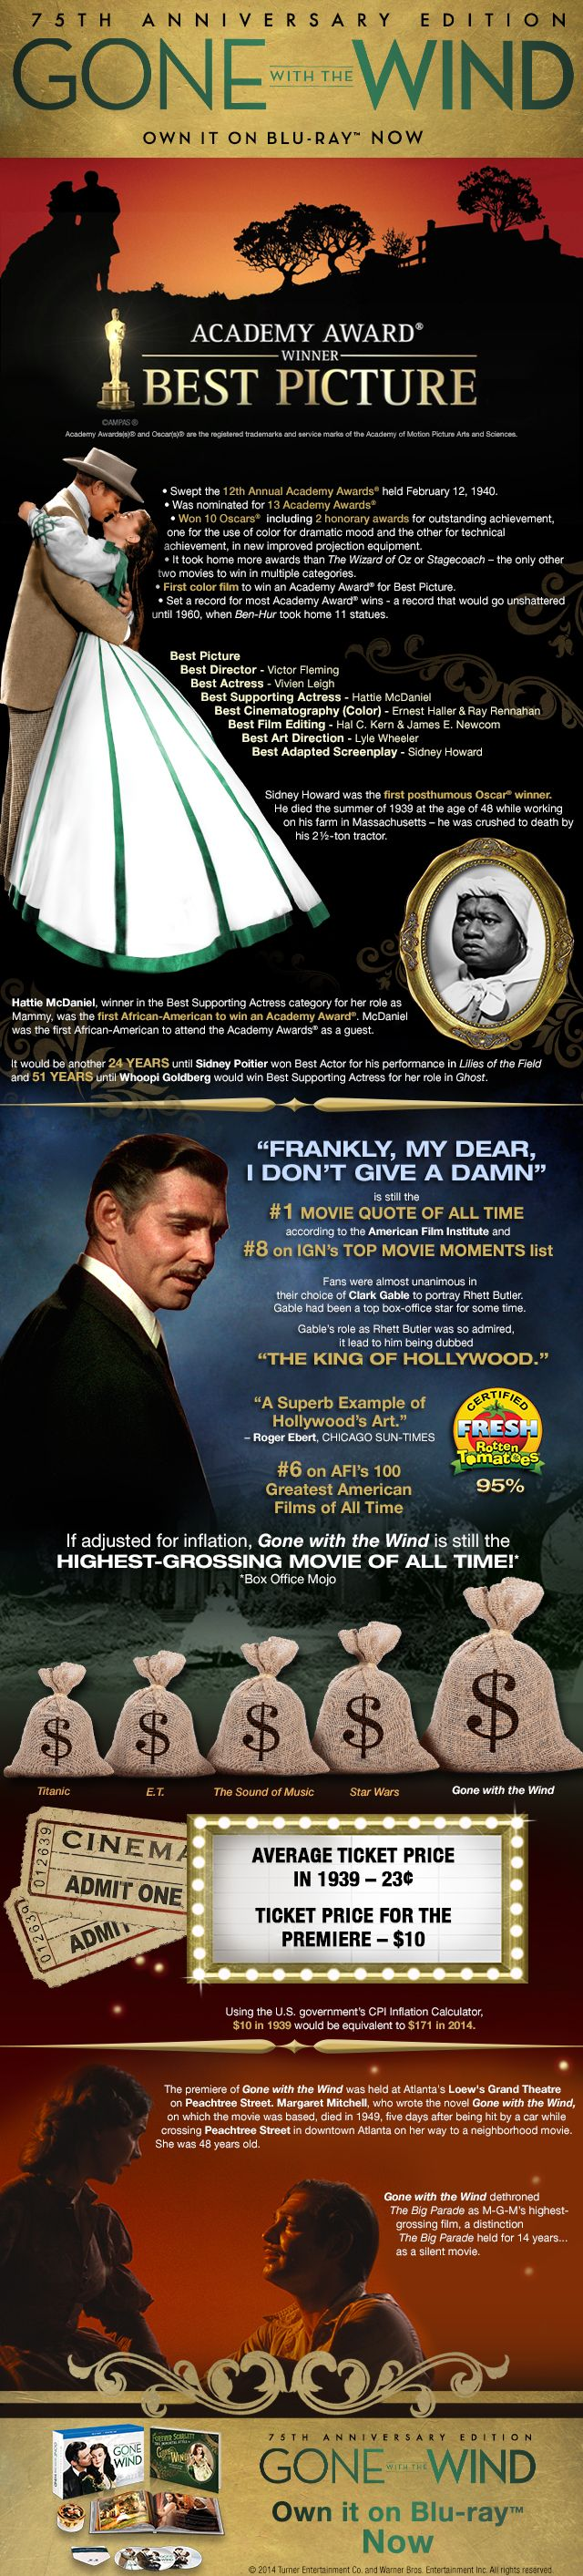 #GoneWithTheWind Awards & Accolades infographic